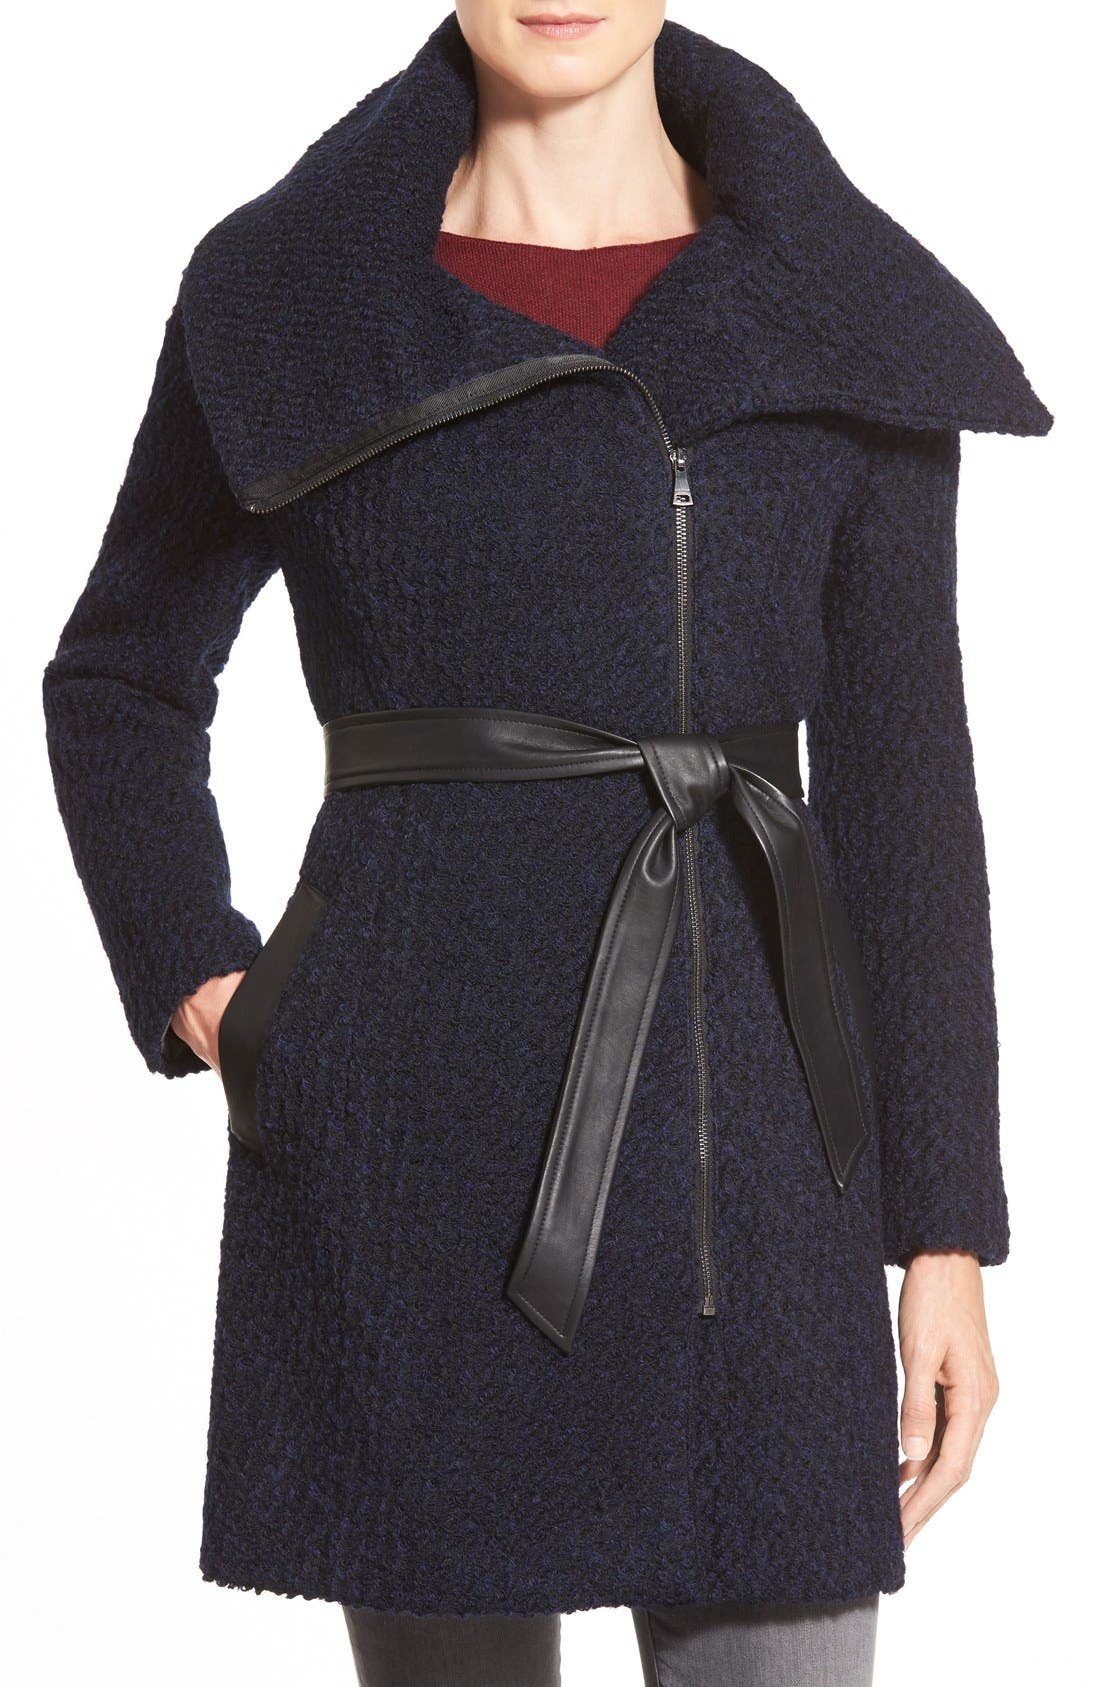 Belted Asymmetrical Bouclé Wool Blend Coat,                             Main thumbnail 1, color,                             Black/ Navy